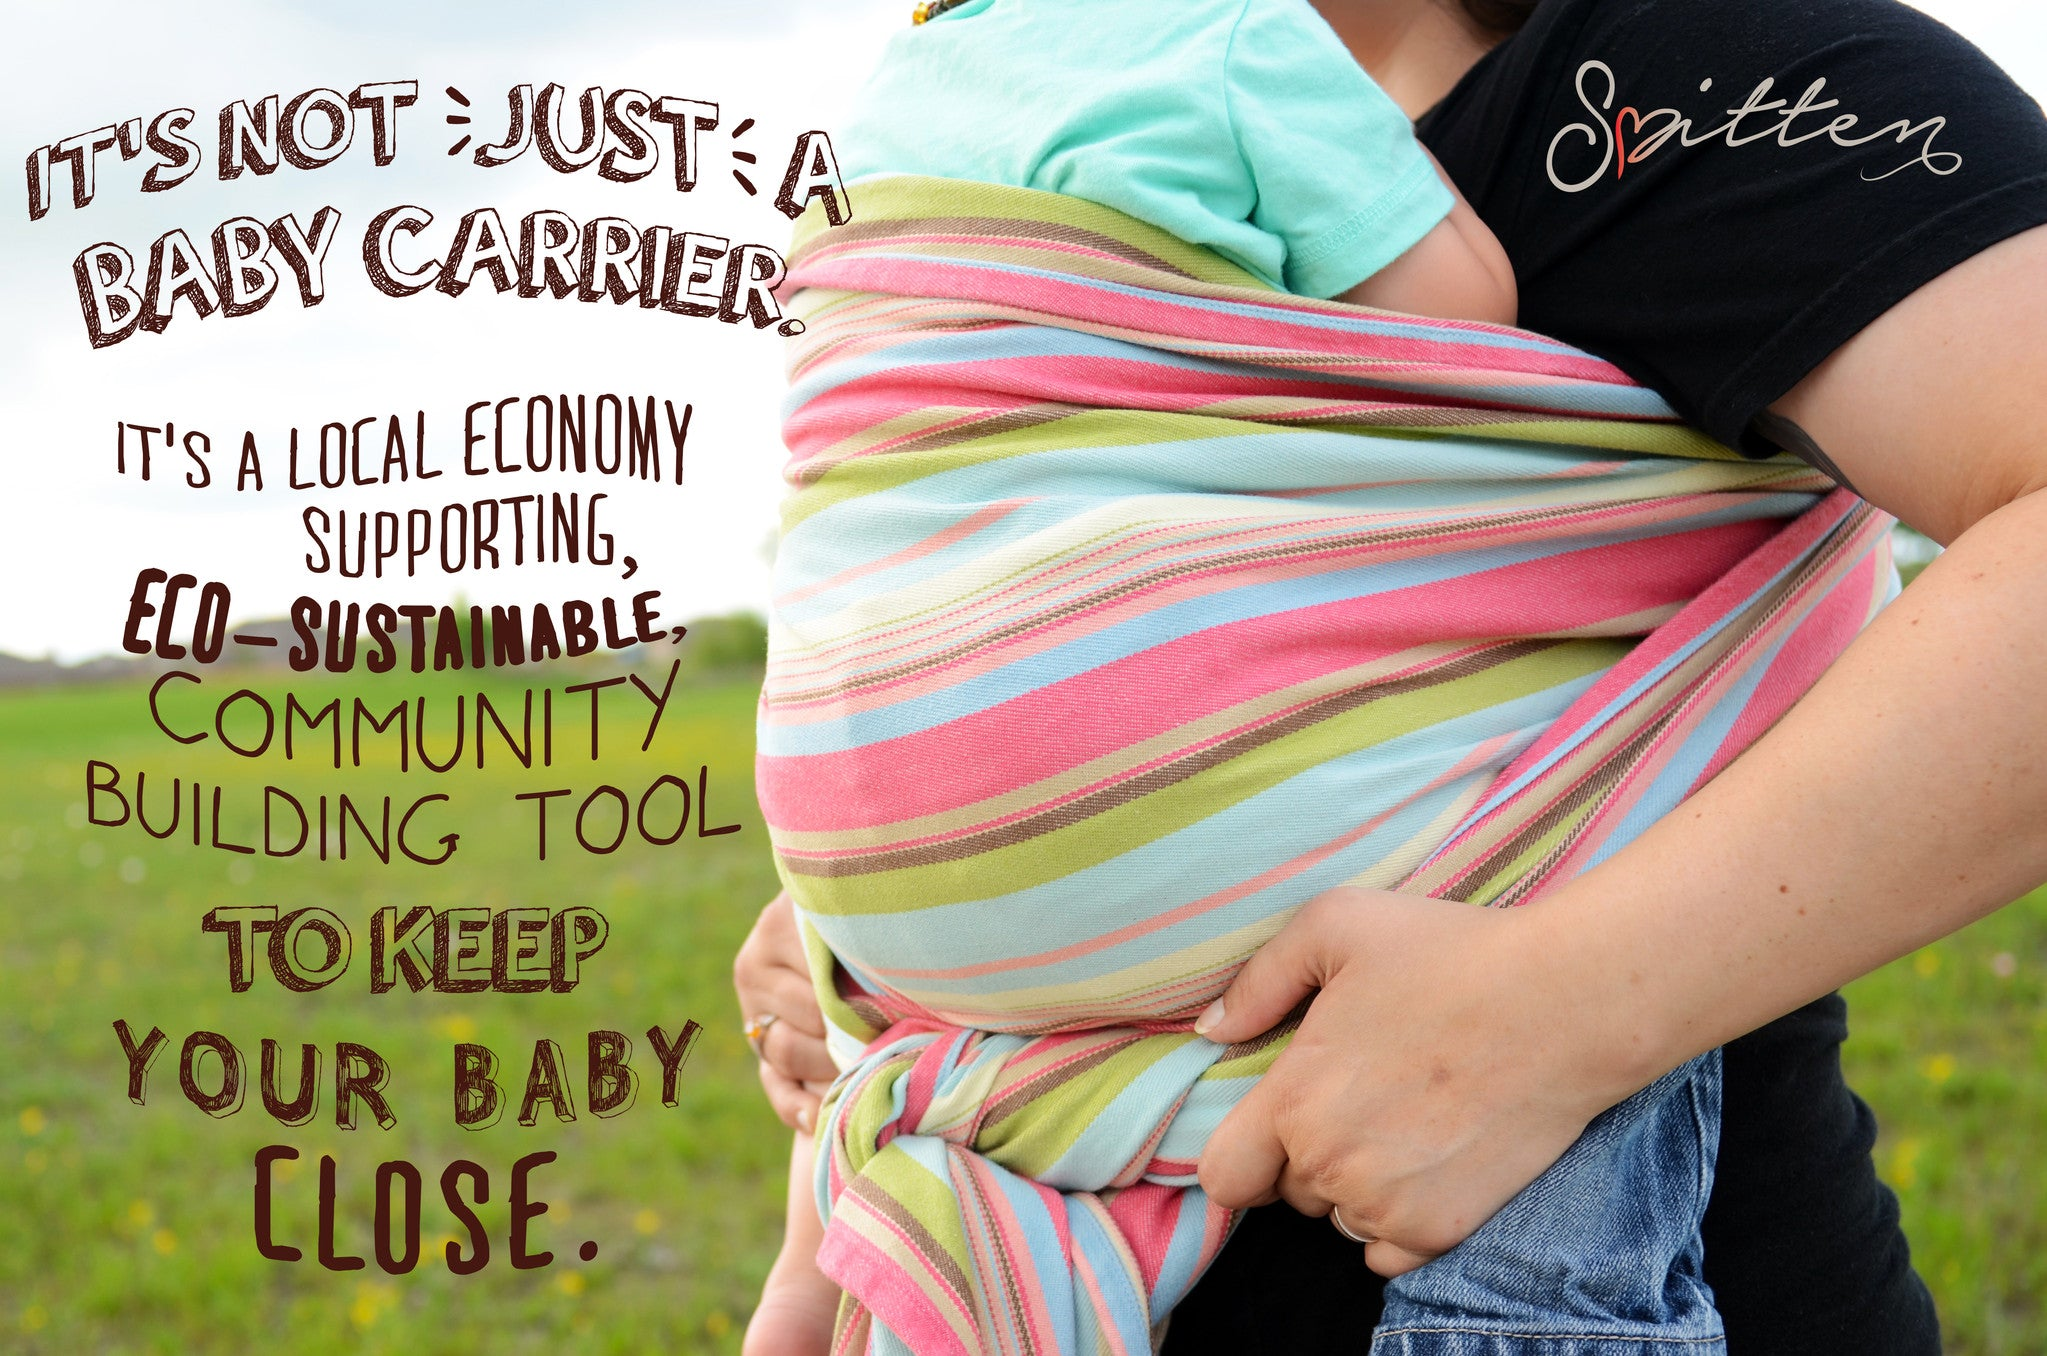 It's not just a baby carrier. It's a local economy supporting, eco-sustainable community building tool to keep your baby close.